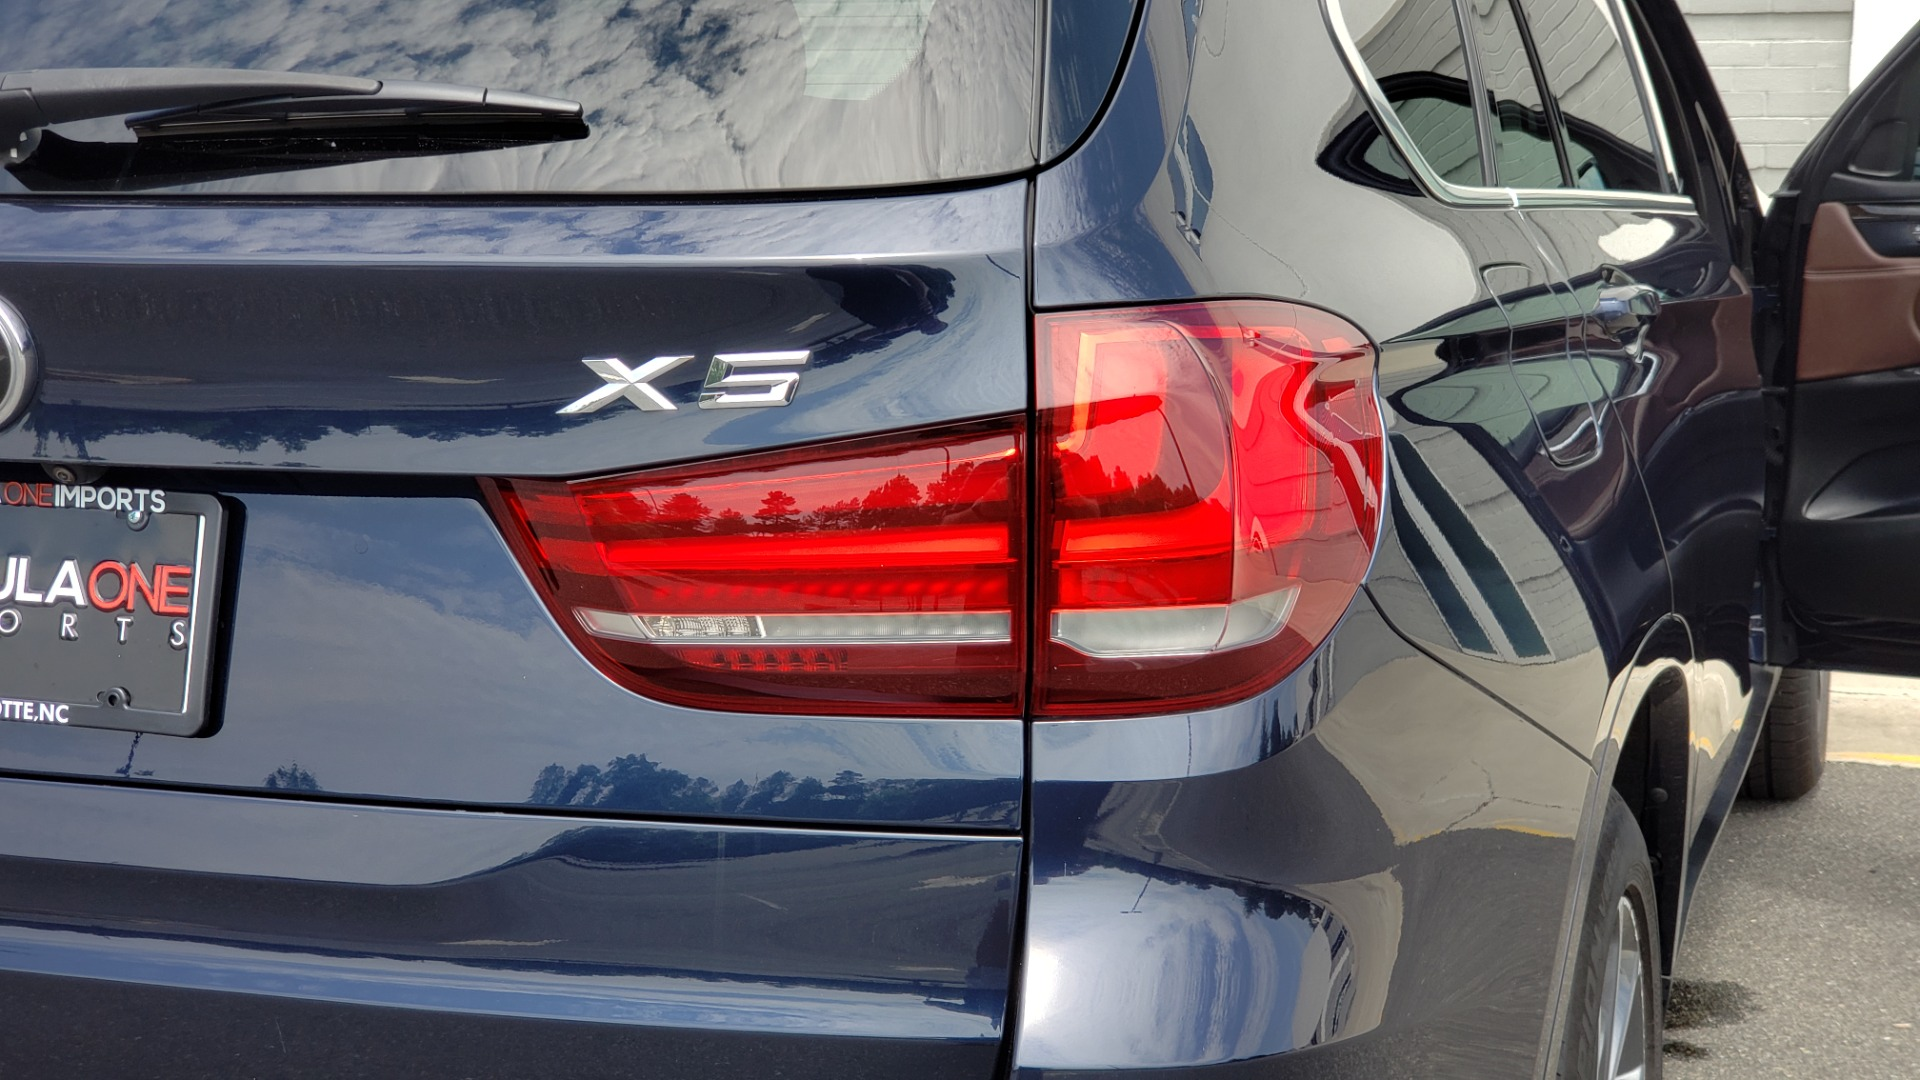 Used 2018 BMW X5 XDRIVE35I PREMIUM / LUXURY / DRVR ASST / HUD / LANE WARNING / REARVIEW for sale $43,695 at Formula Imports in Charlotte NC 28227 35